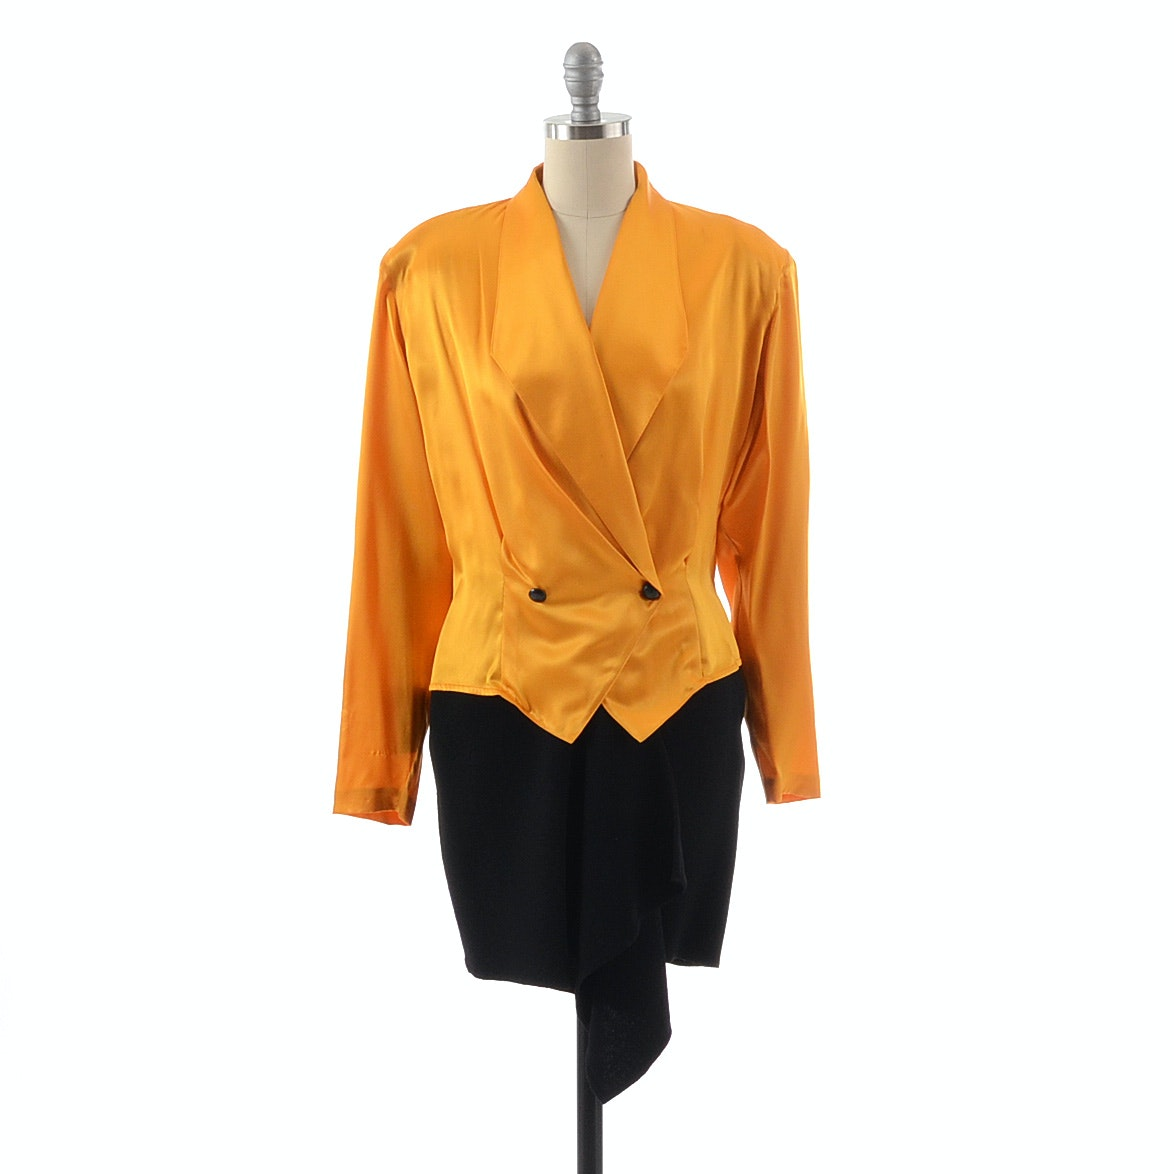 Vintage Christian Dior Silk Blouse in Yellow Saffron Paired with a Donna Karan of New York Black Wool Mini